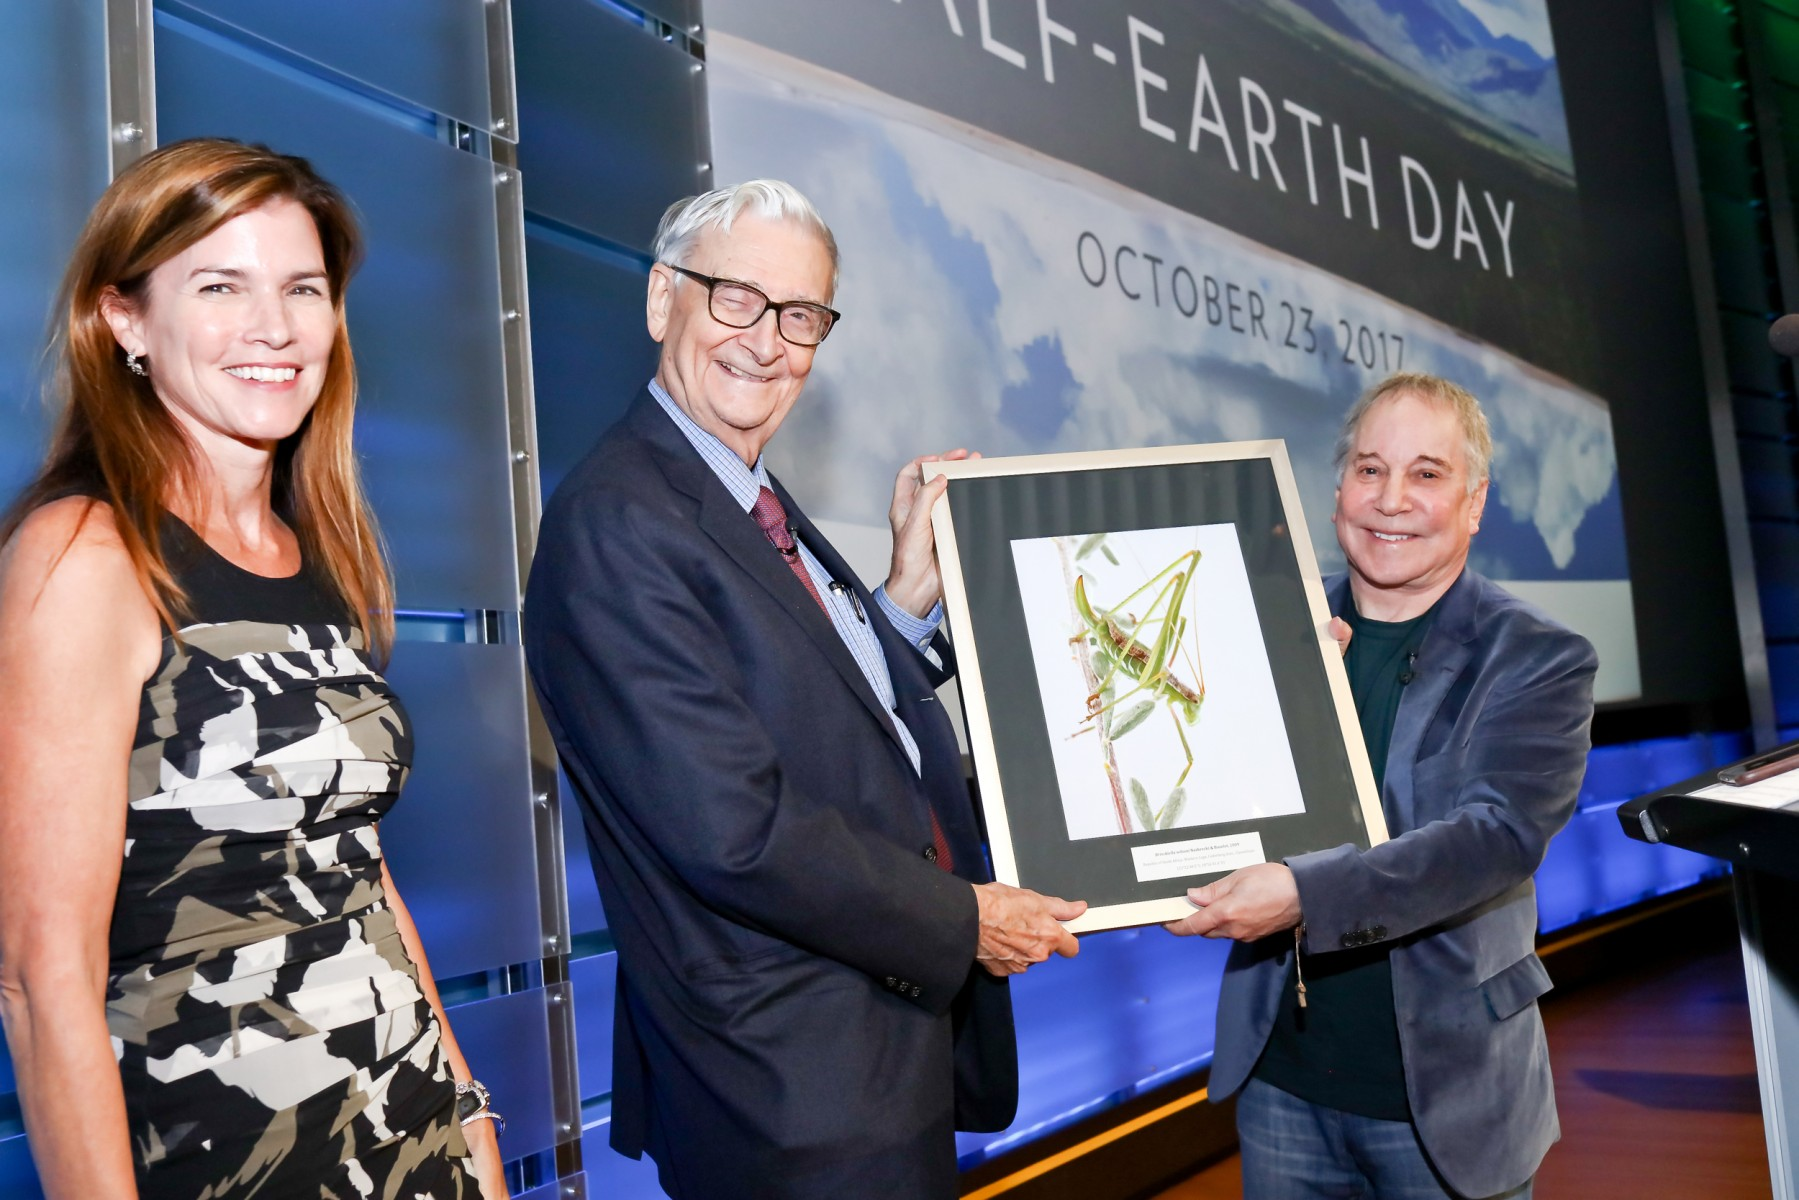 E.O. Wilson Biodiversity Foundation president and CEO Paula Ehrlich (left) stands with eminent biologist Edward O. Wilson (center) and legendary recording artist Paul Simon (right) at the evening session of the planet's first-ever Half-Earth Day. The inaugural event was co-convened by National Geographic and the E. O. Wilson Biodiversity Foundation and held at the National Geographic Society in Washington, D.C. on Oct. 23, 2017.